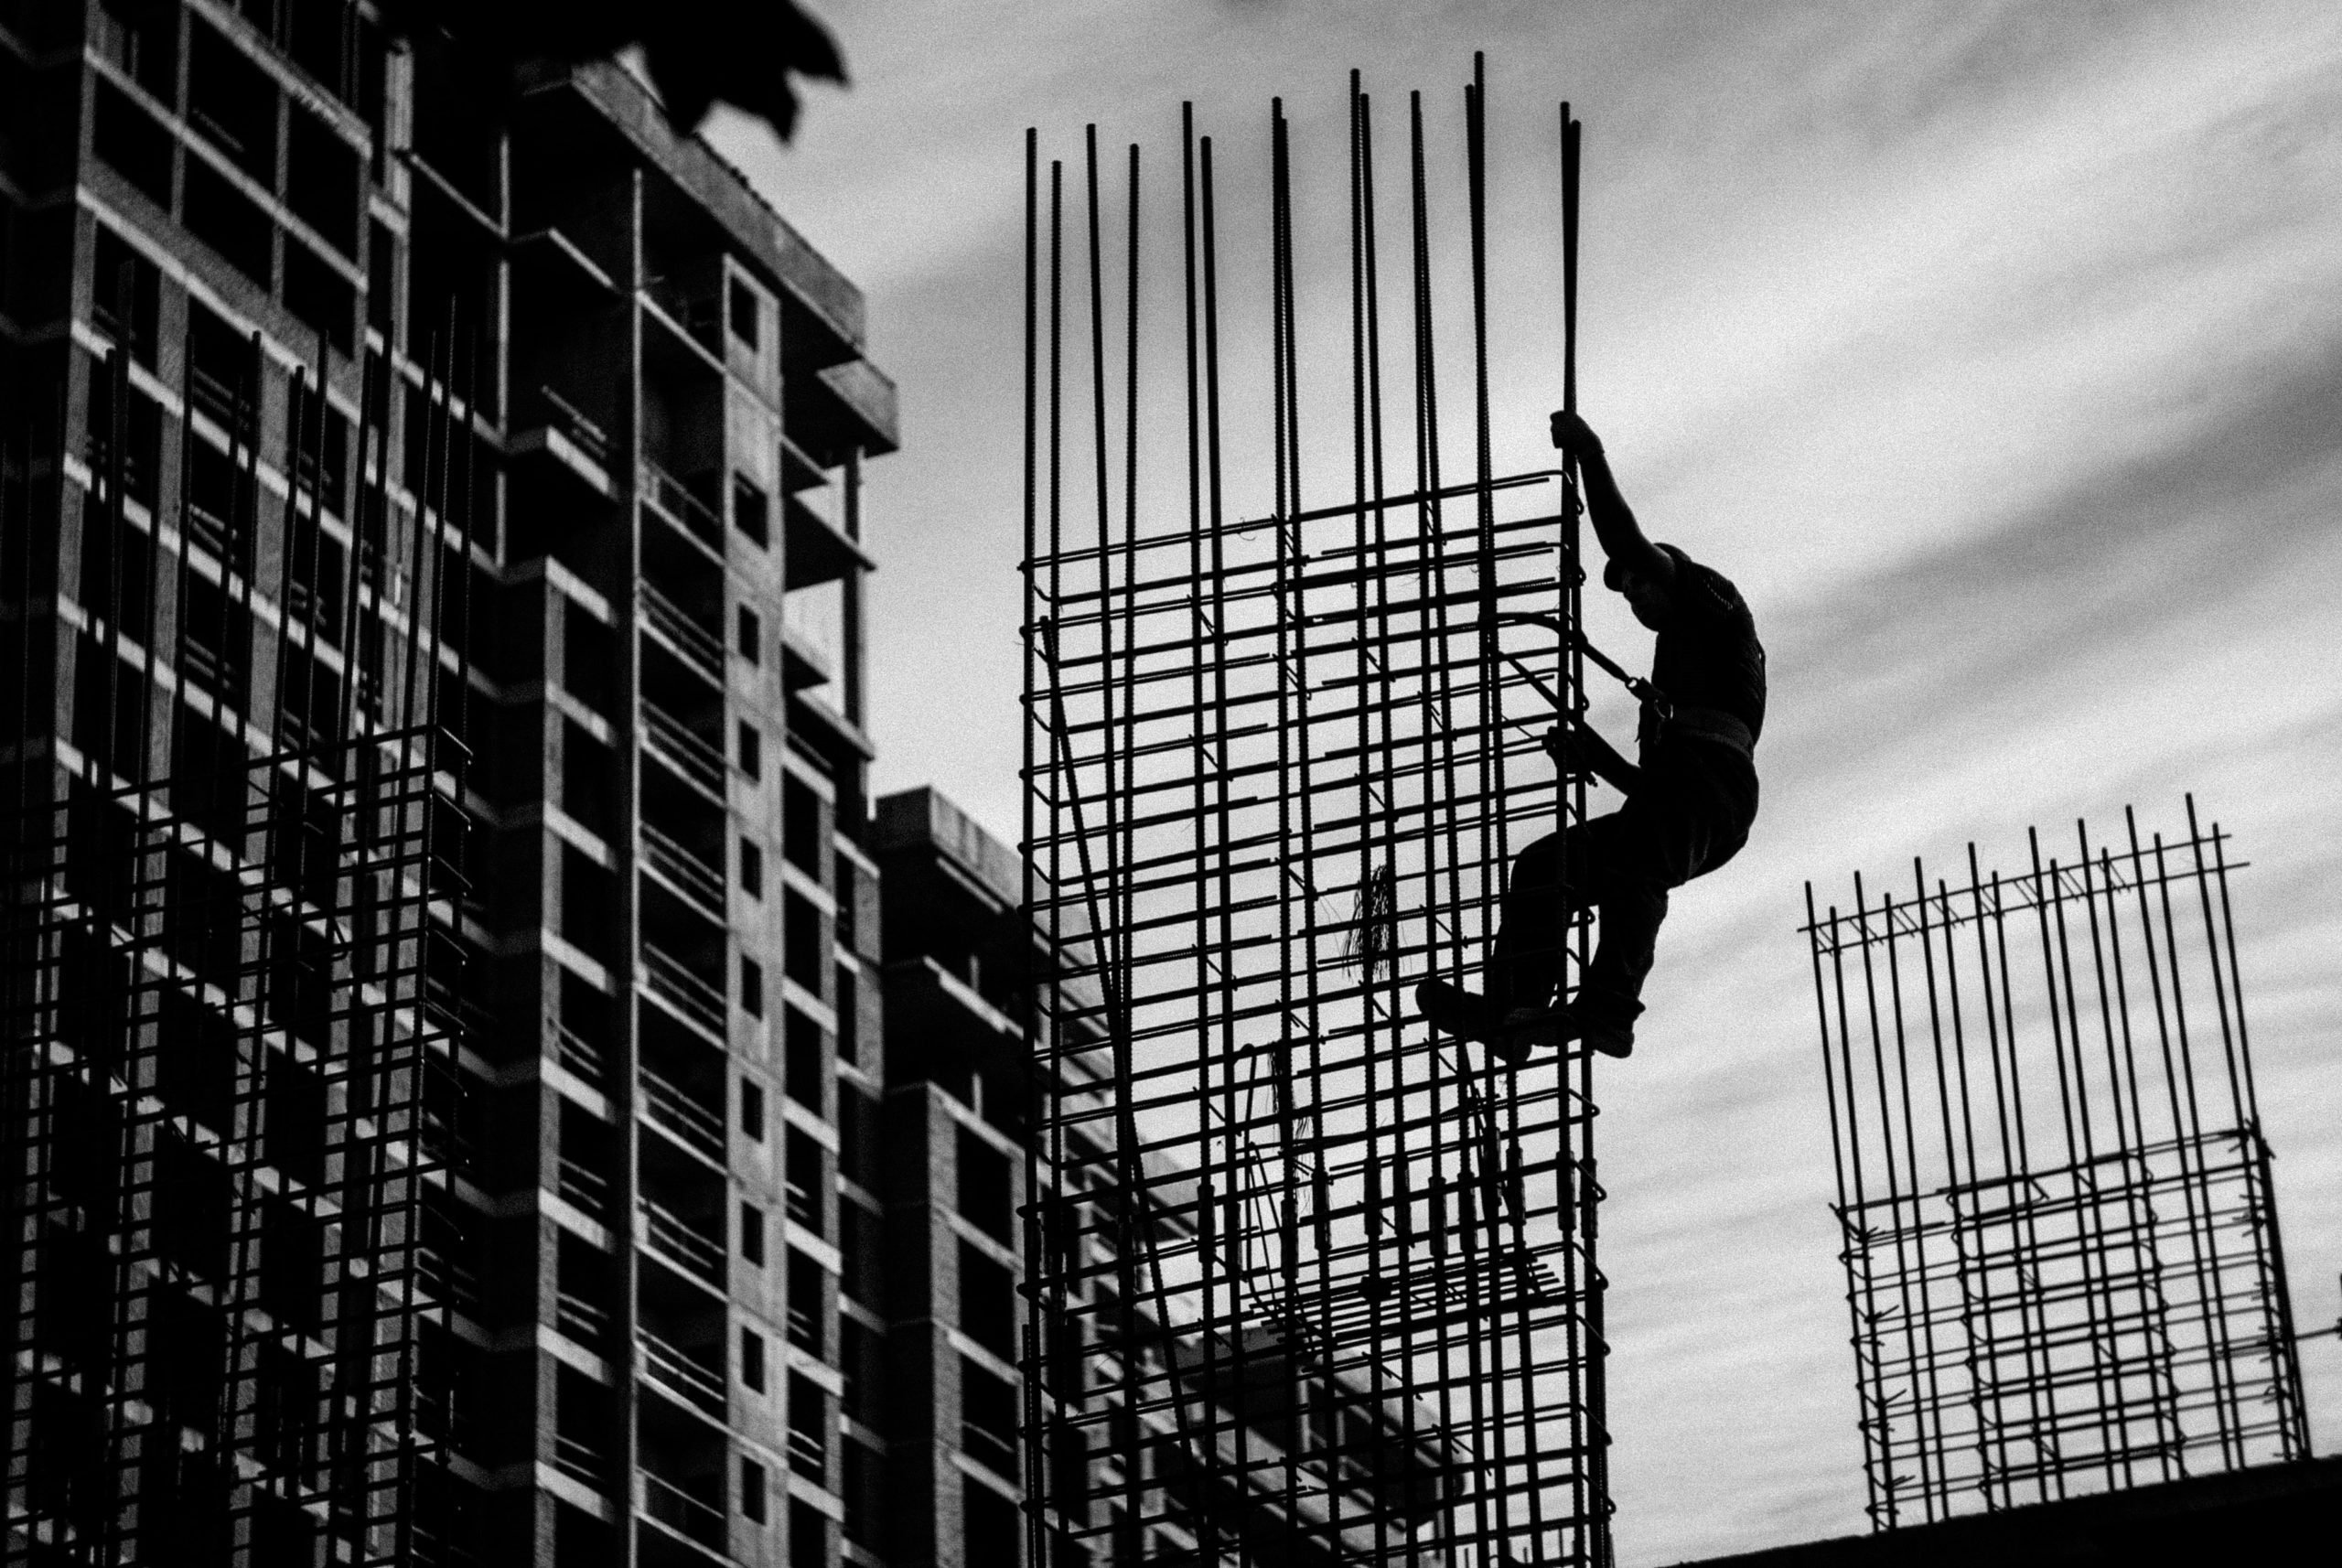 brief history of scaffolding